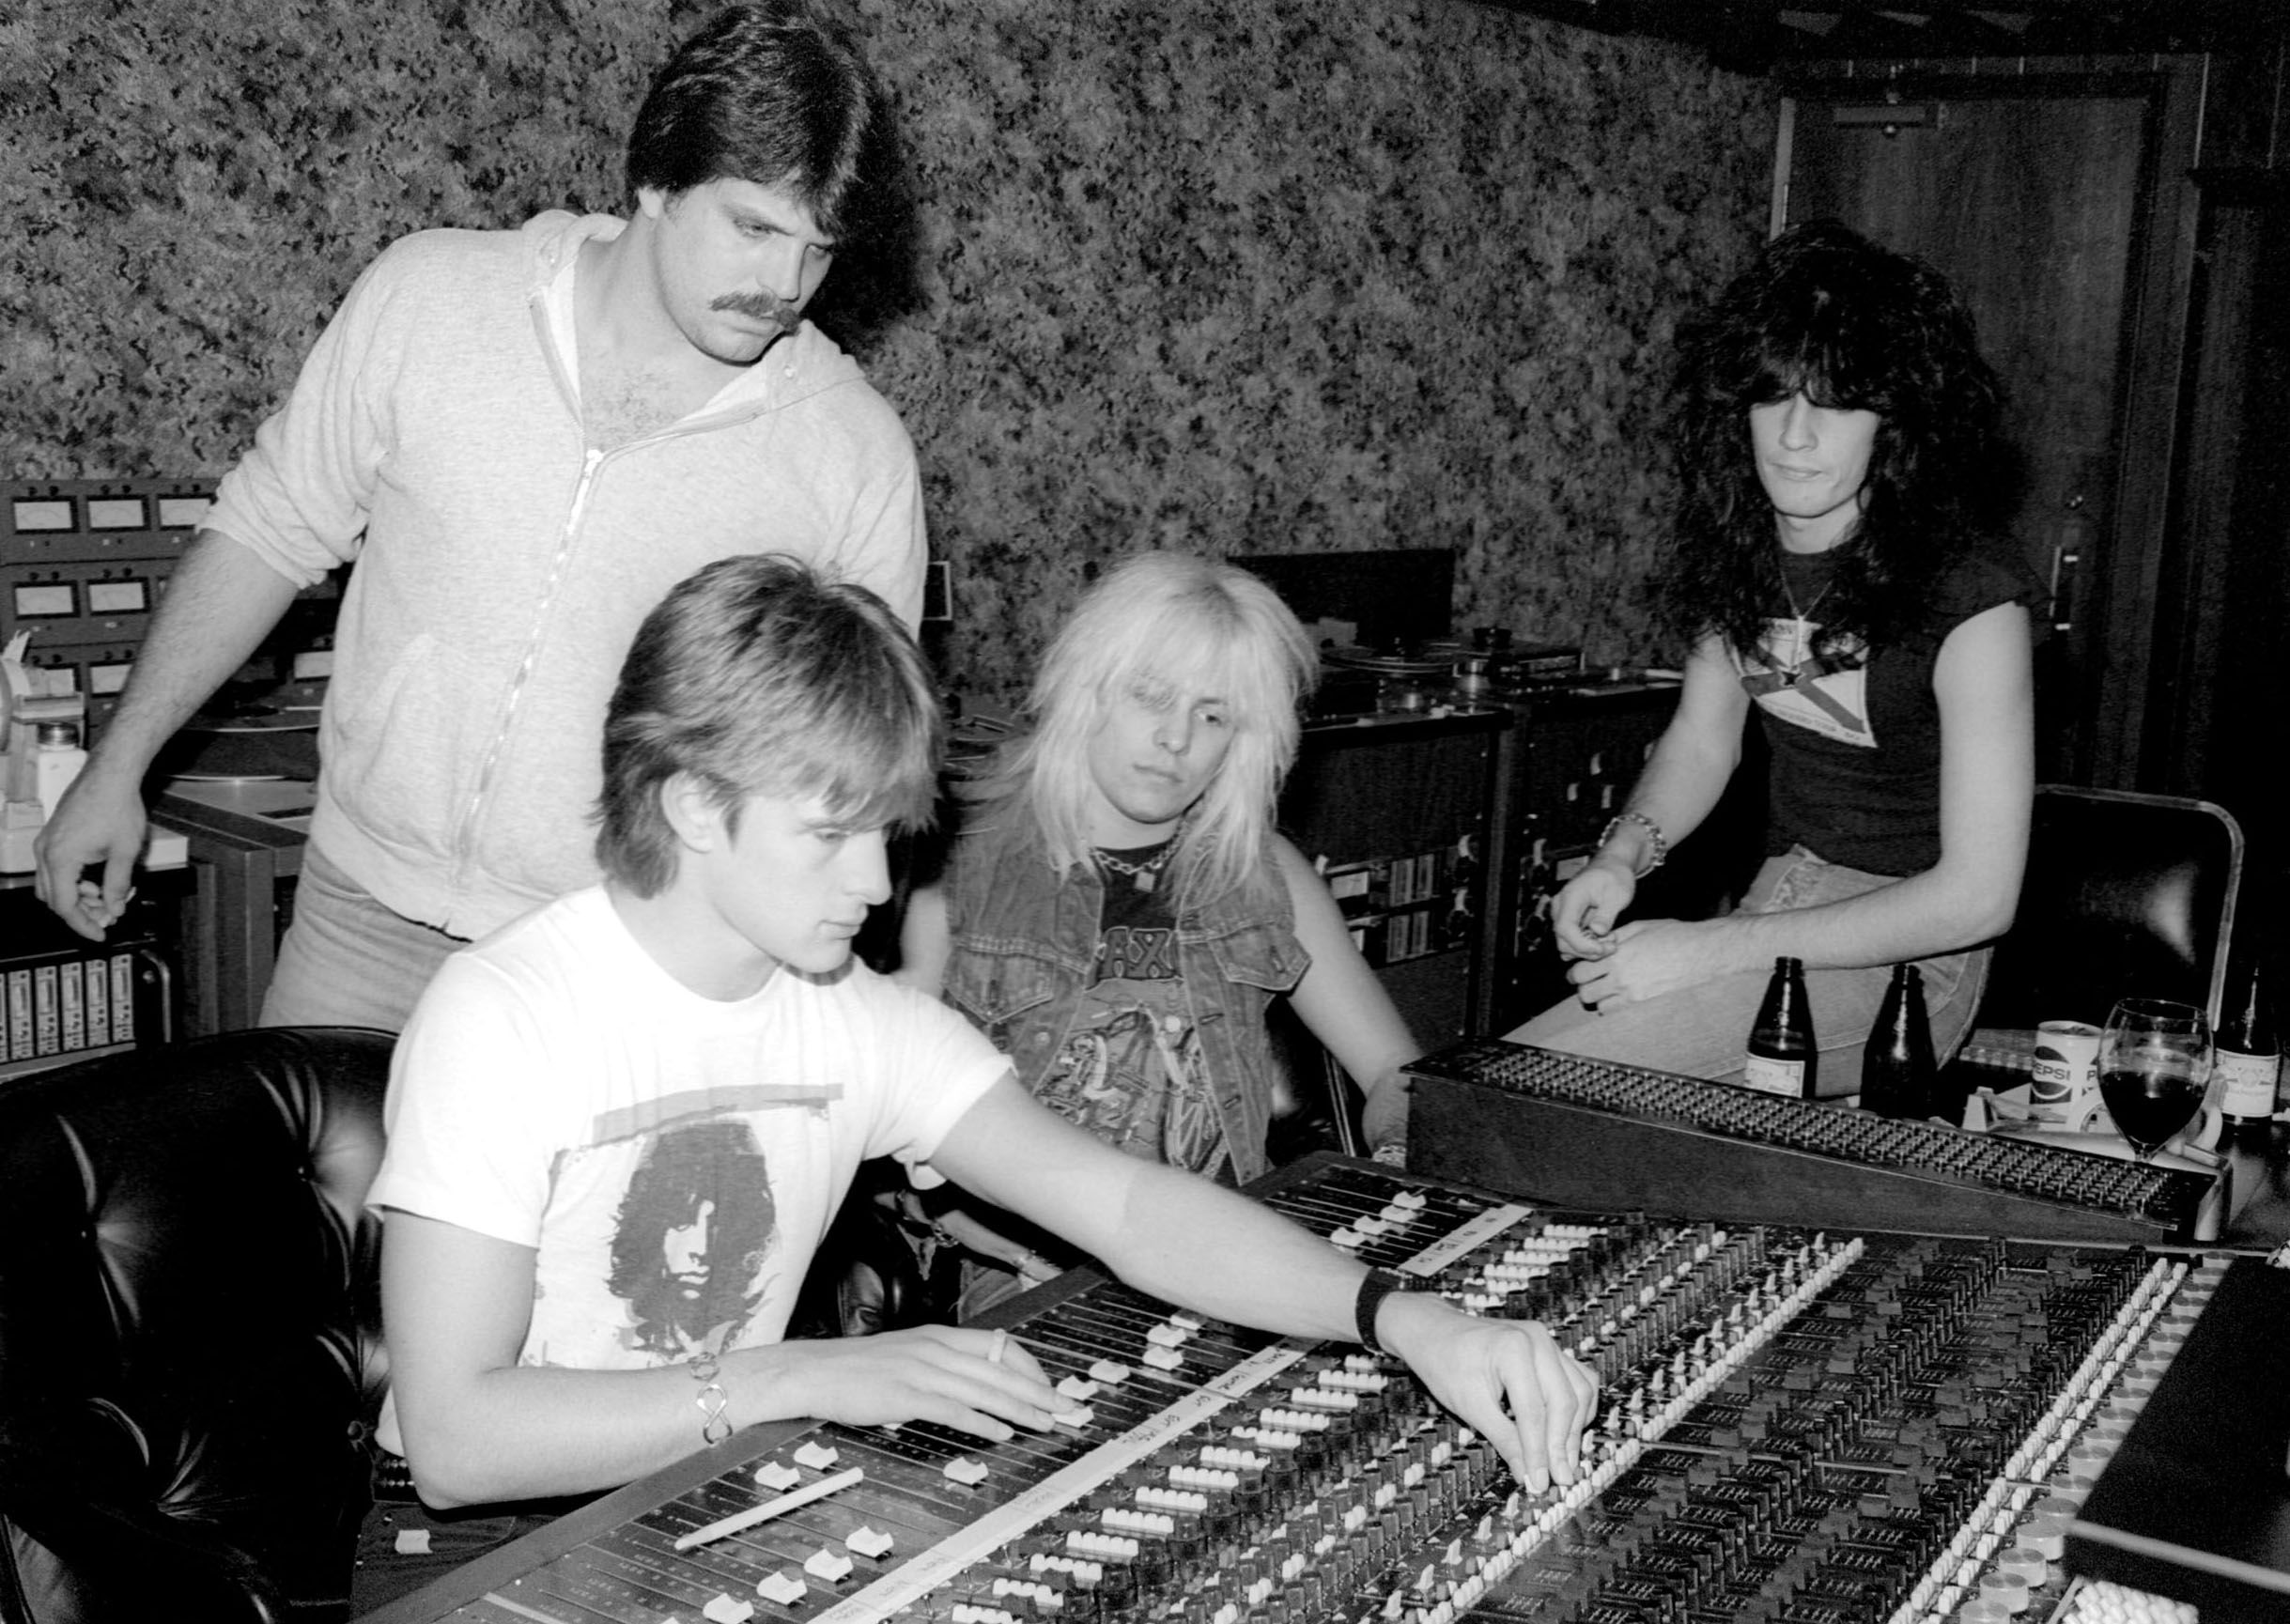 Vince Neil (C) and Tommy Lee (R) of  Mötley Crüe recording at Cherokee Recording Studios in Los Angeles, California in 1981.